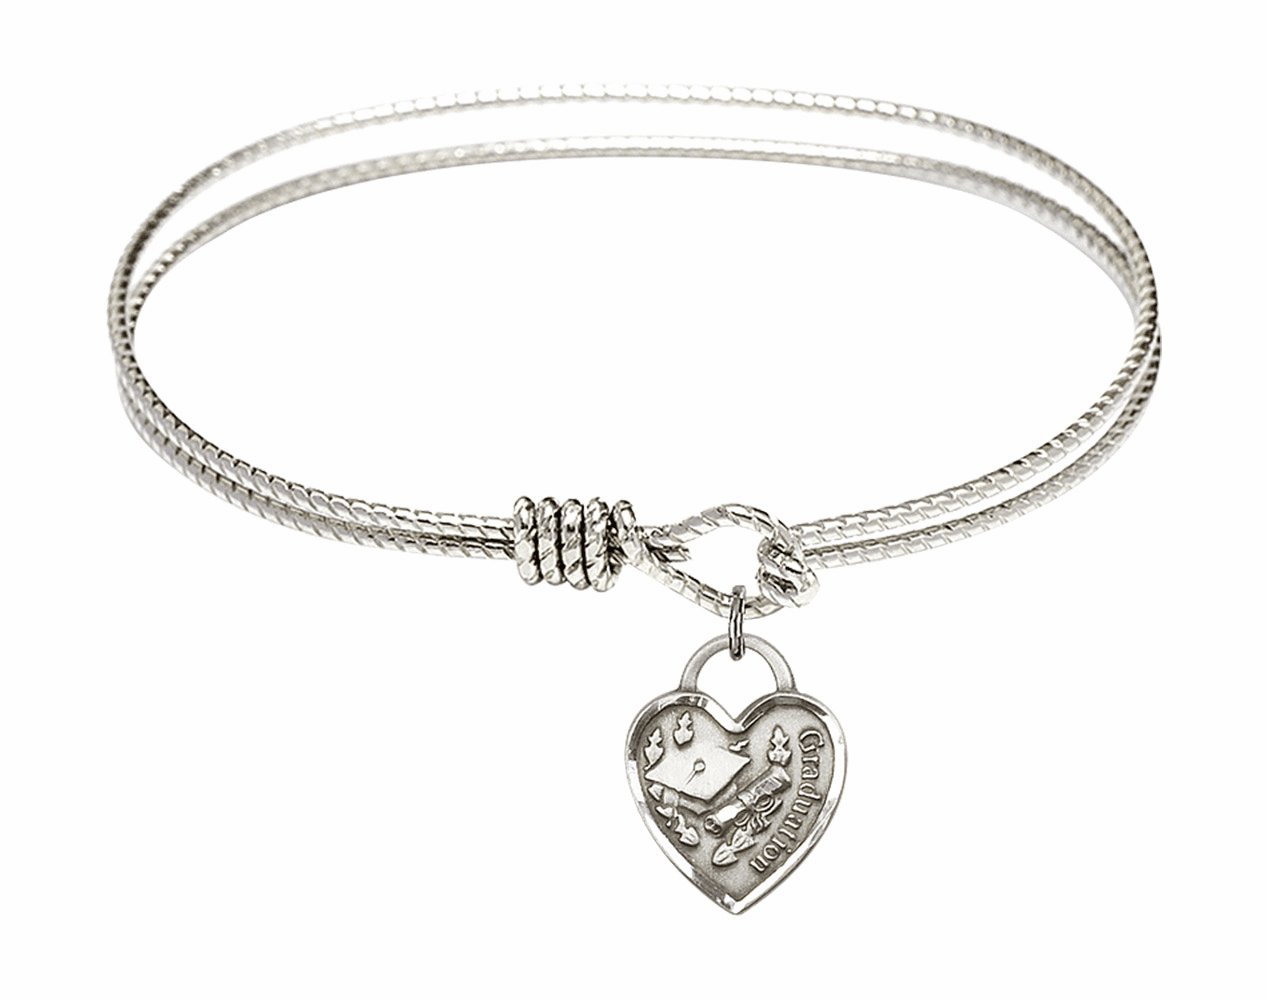 Round Twist Eye Hook Bangle Bracelet w/Graduation Heart Sterling Silver Charm by Bliss Mfg